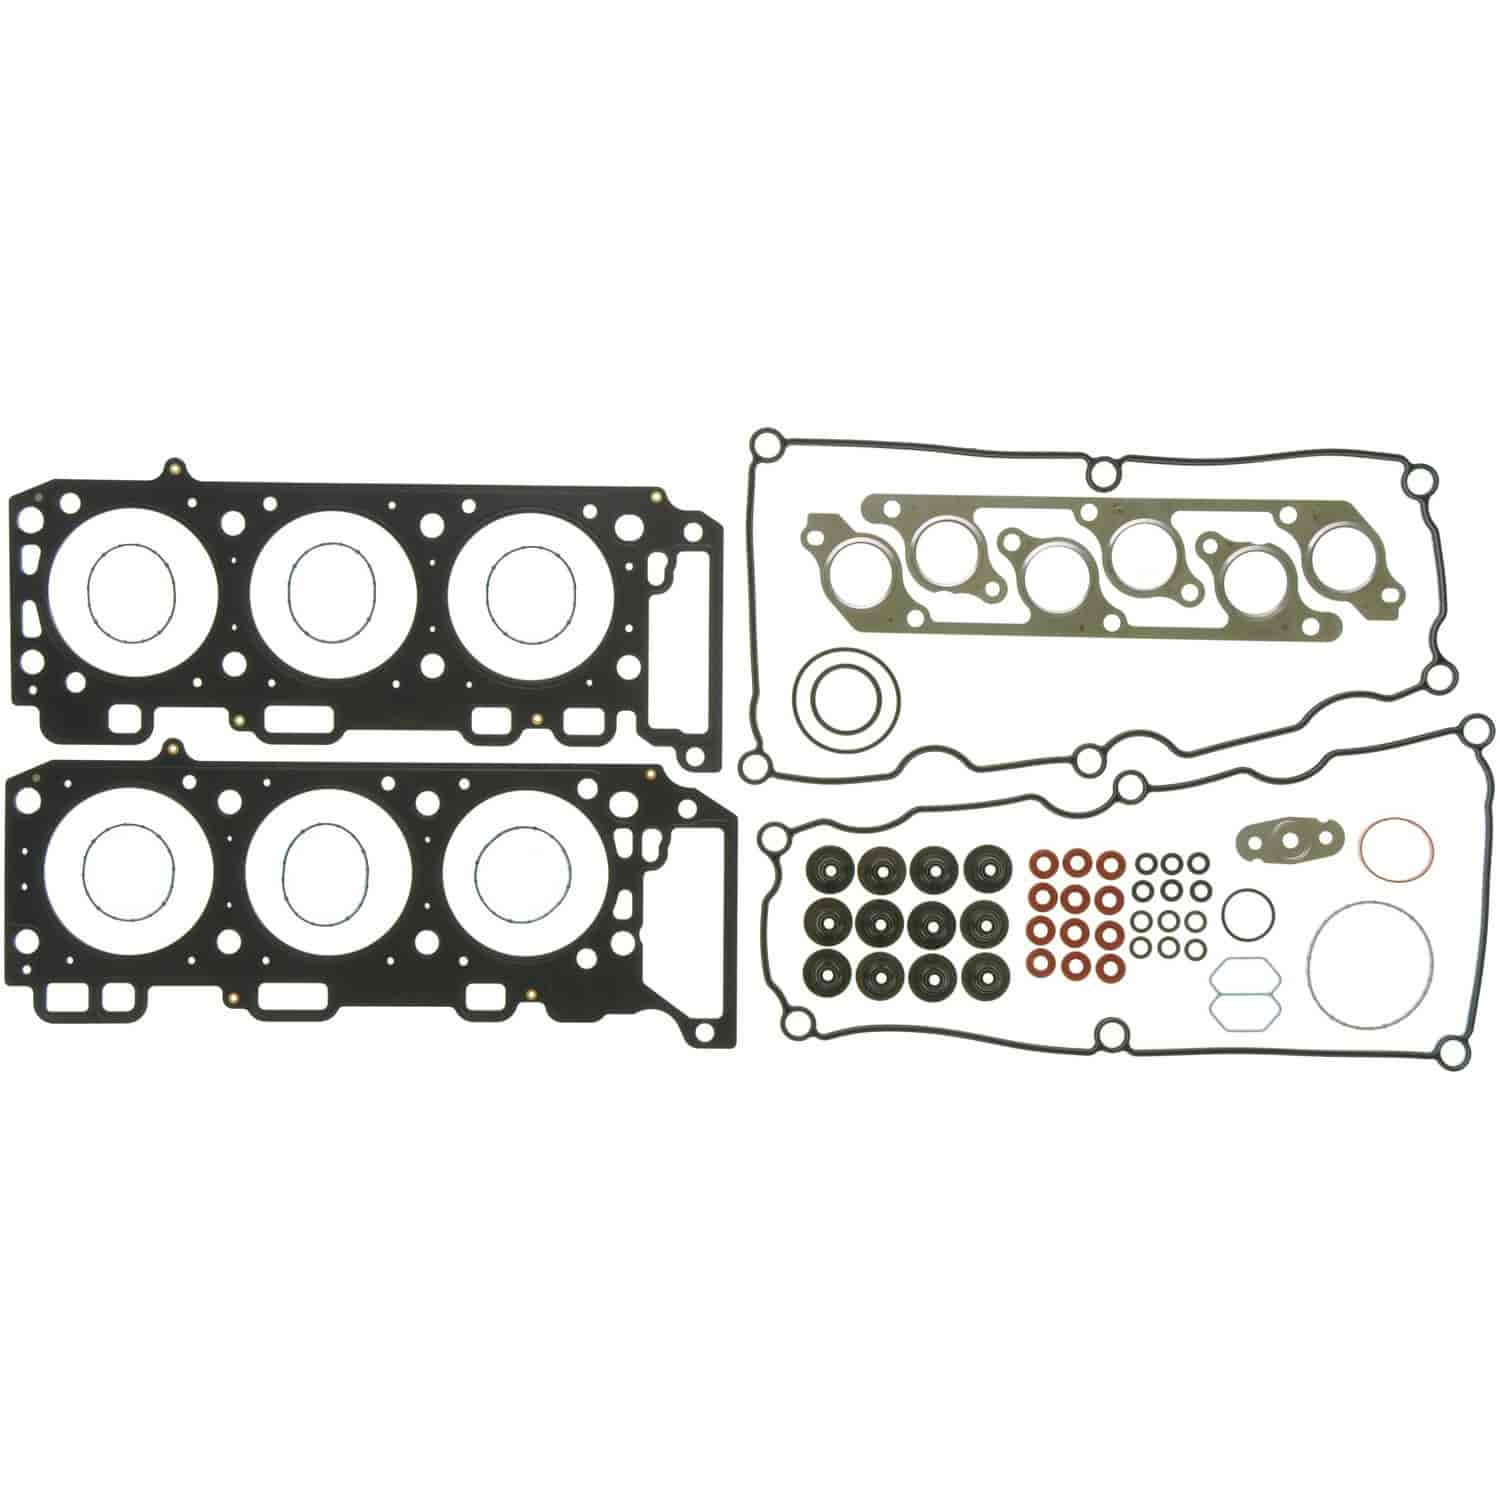 Clevite Mahle Hs F Head Gasket Set Ford